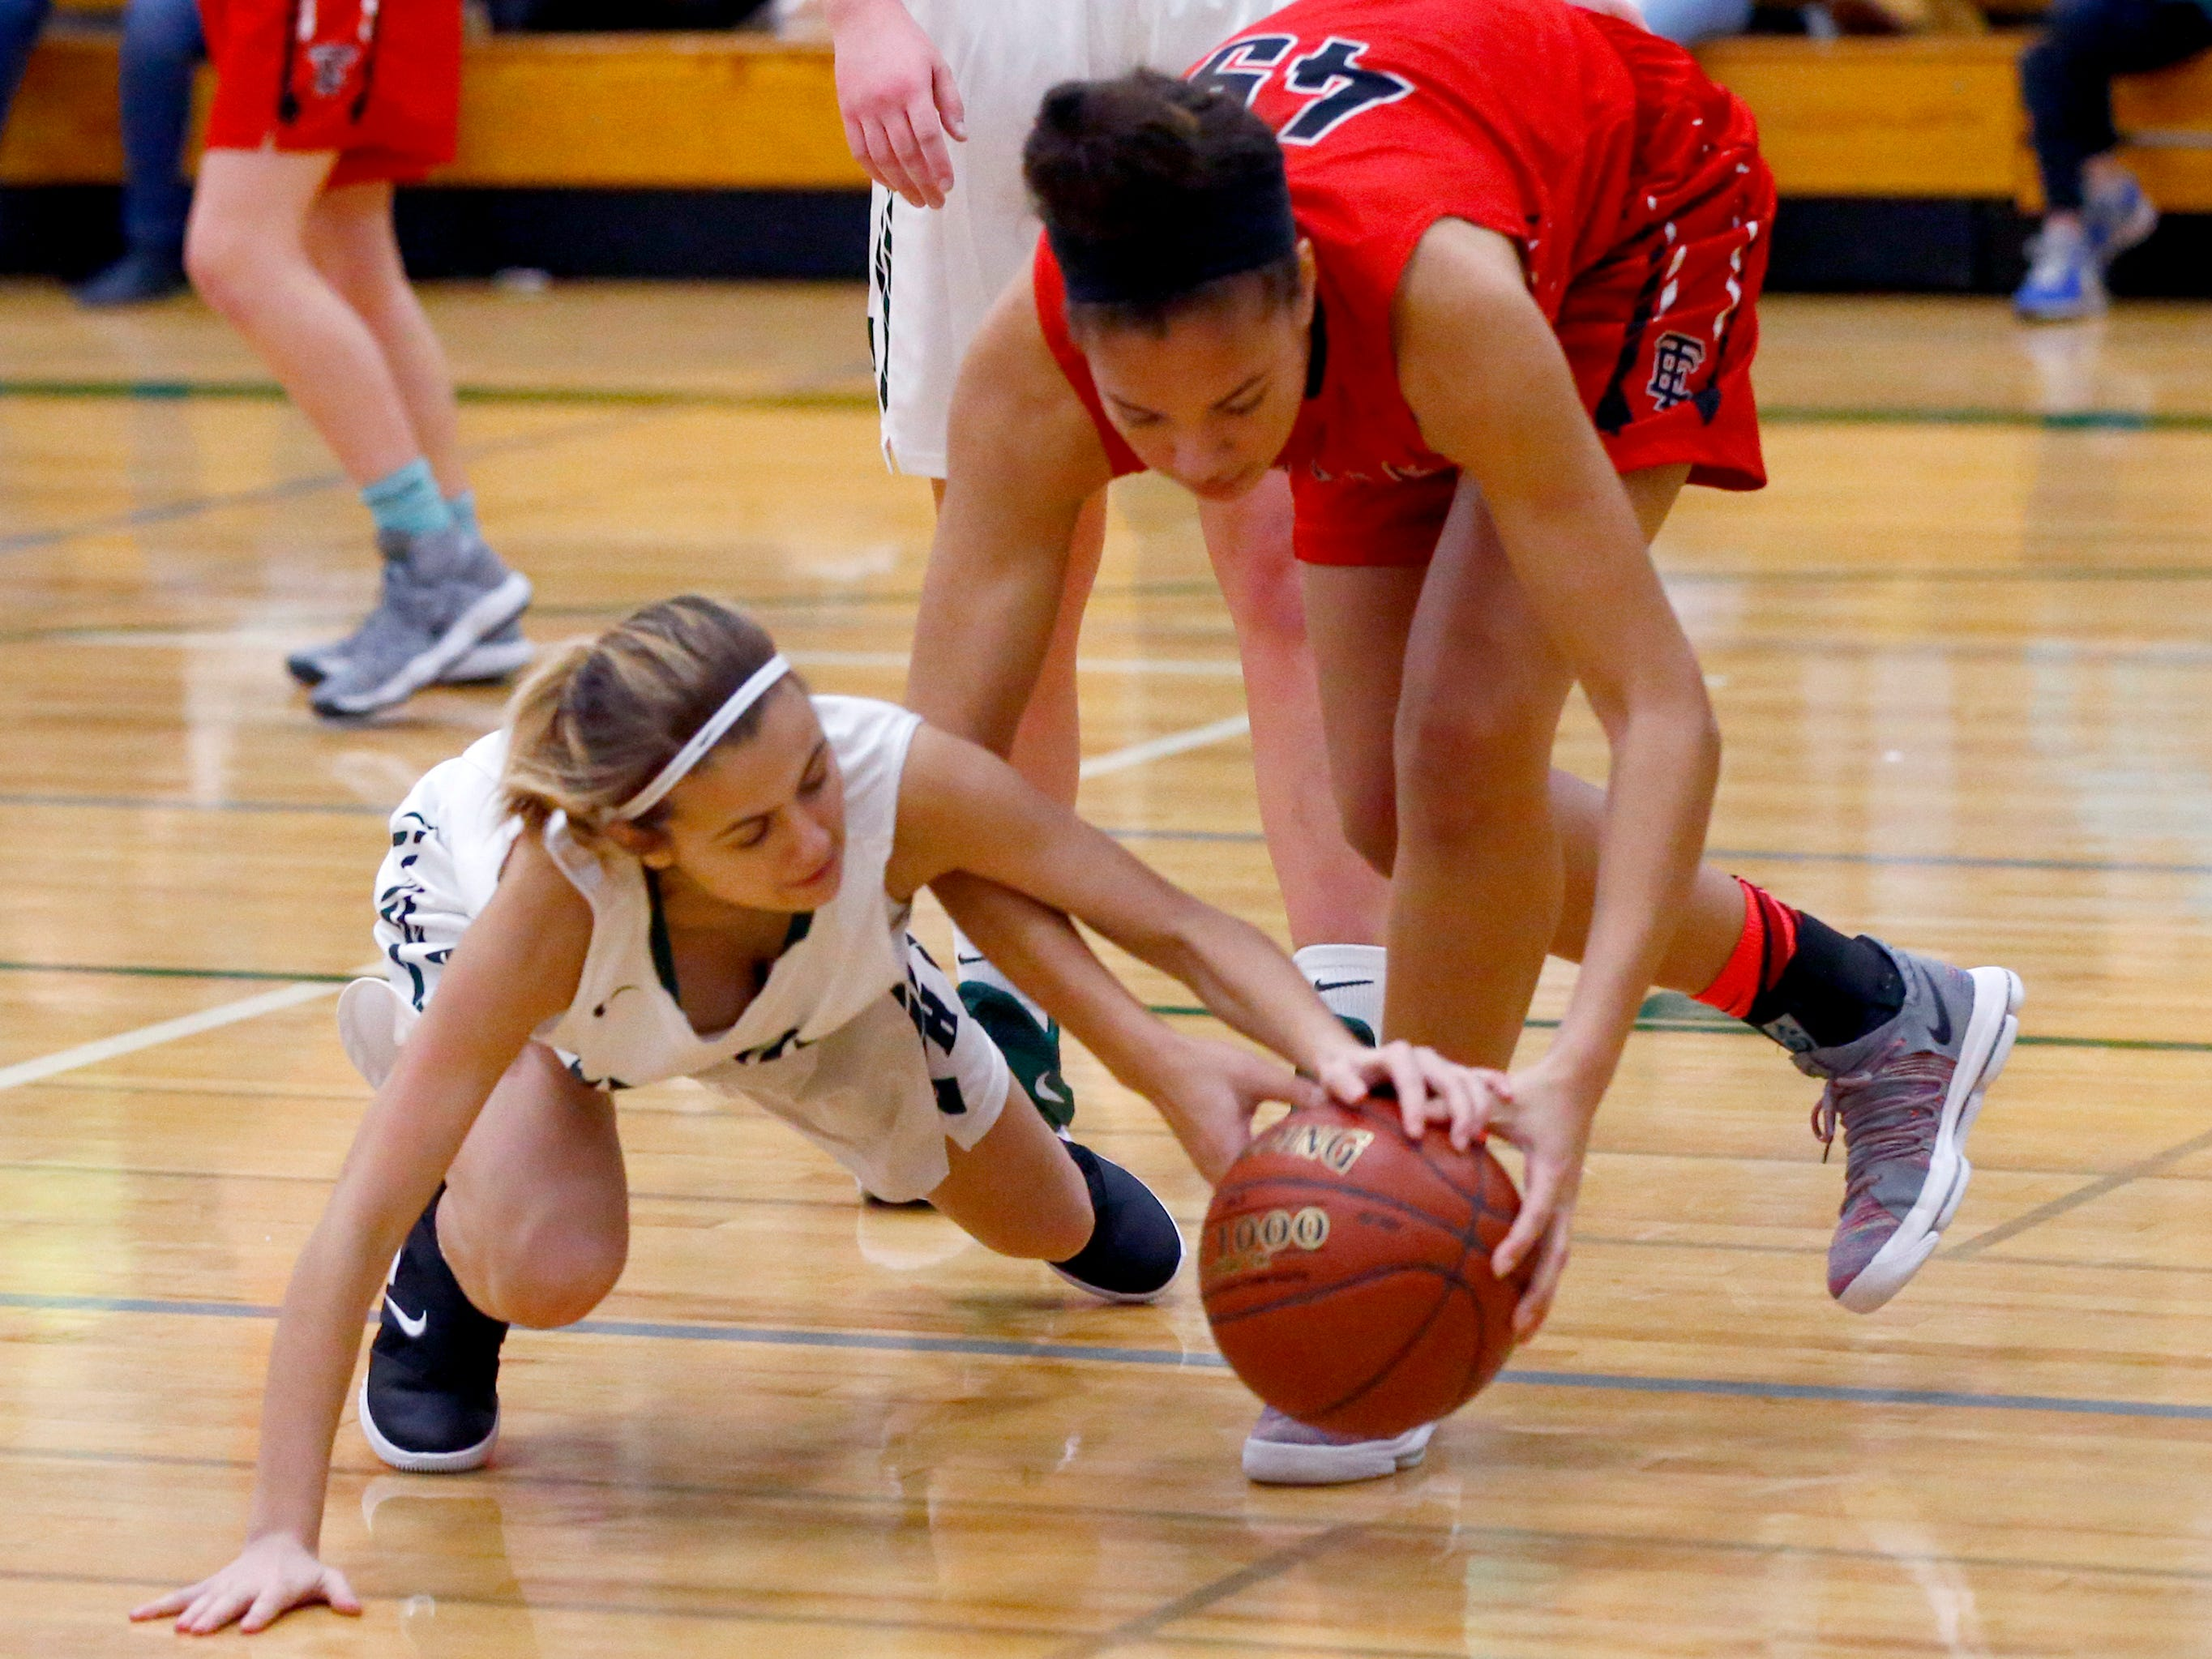 West Allis Hale's Tiffani Paulos and Wauwatosa East's Brooklyn Blackburn scramble for the ball at Hale on Nov. 30.